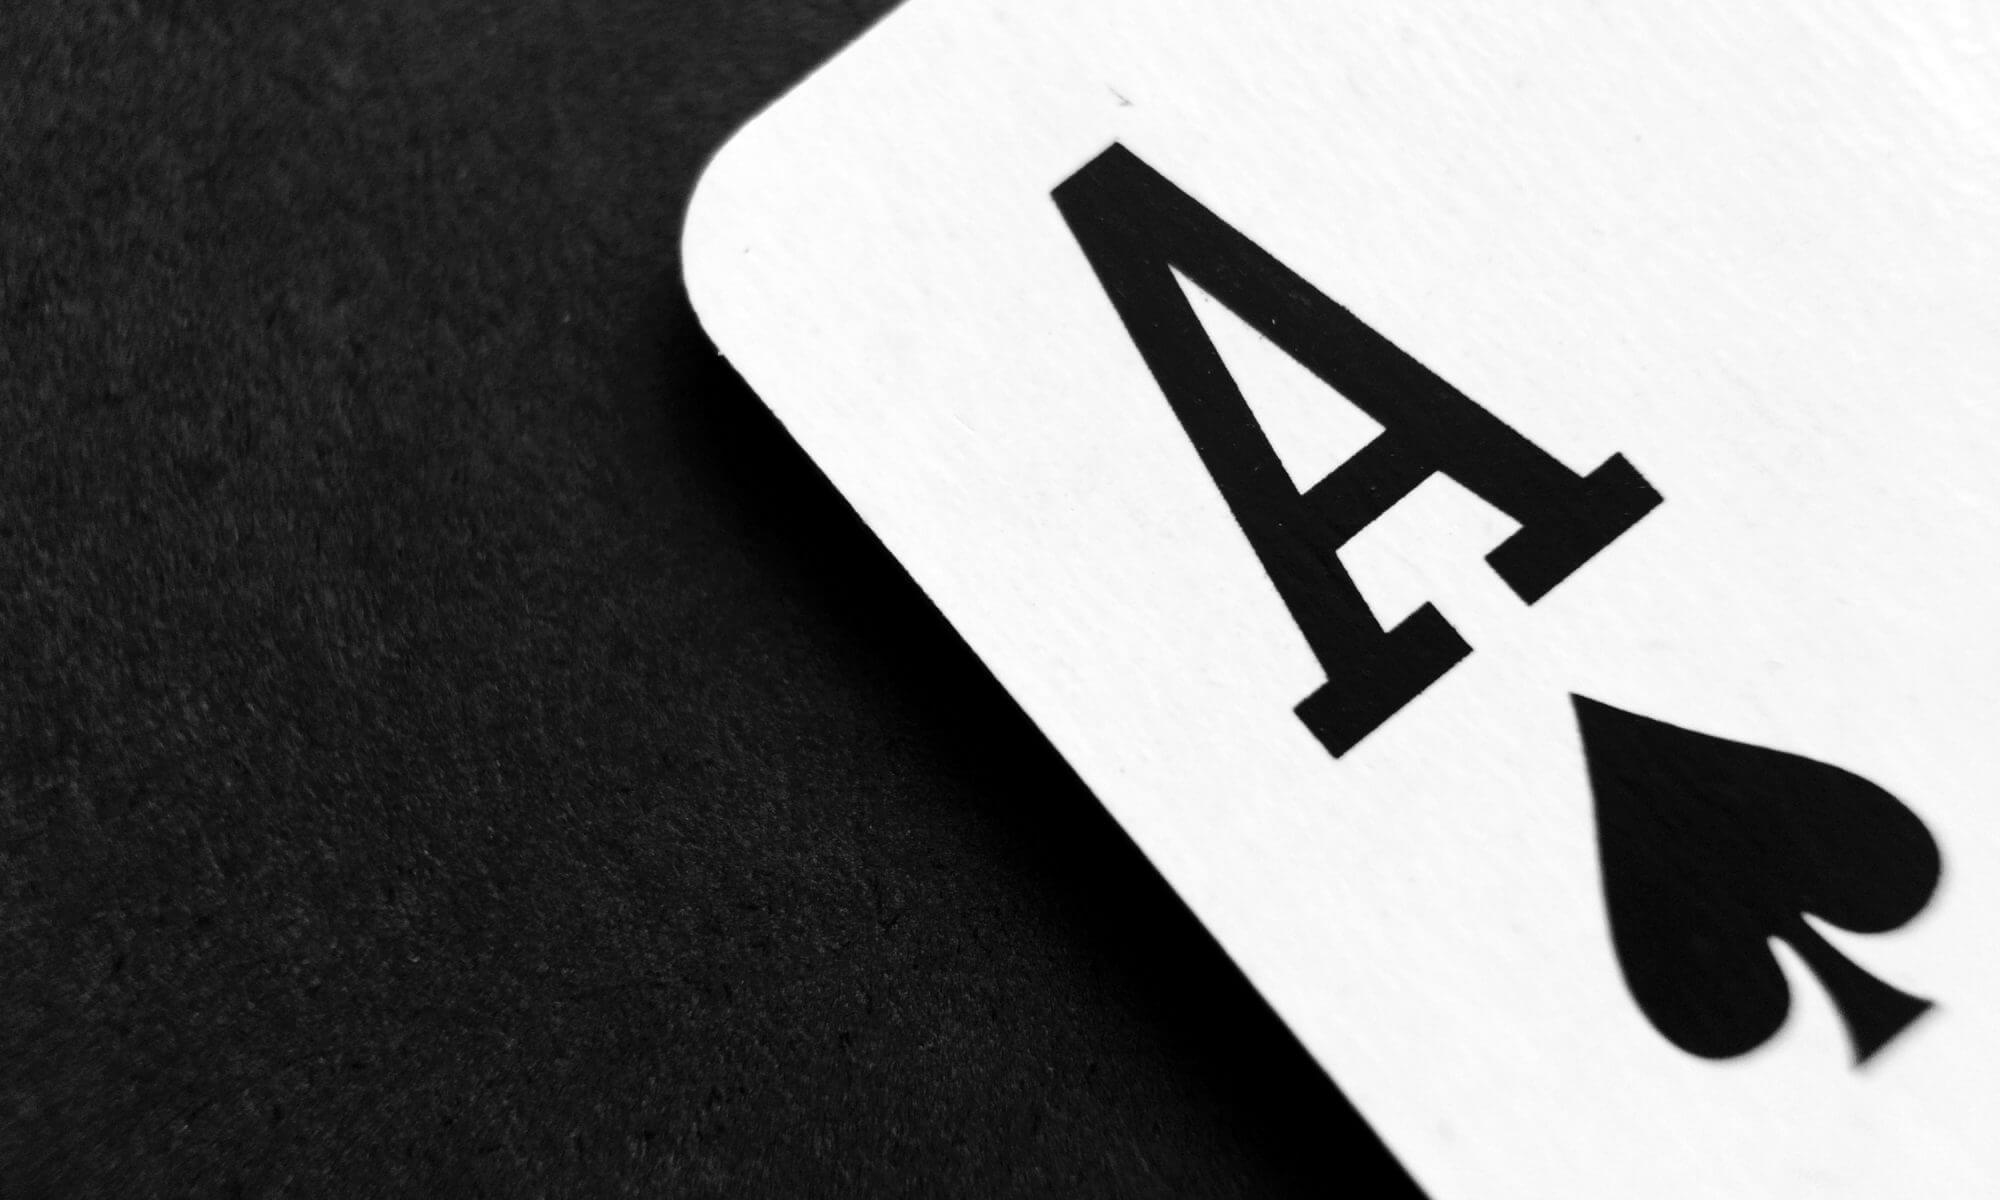 Ace of Spades, playing card